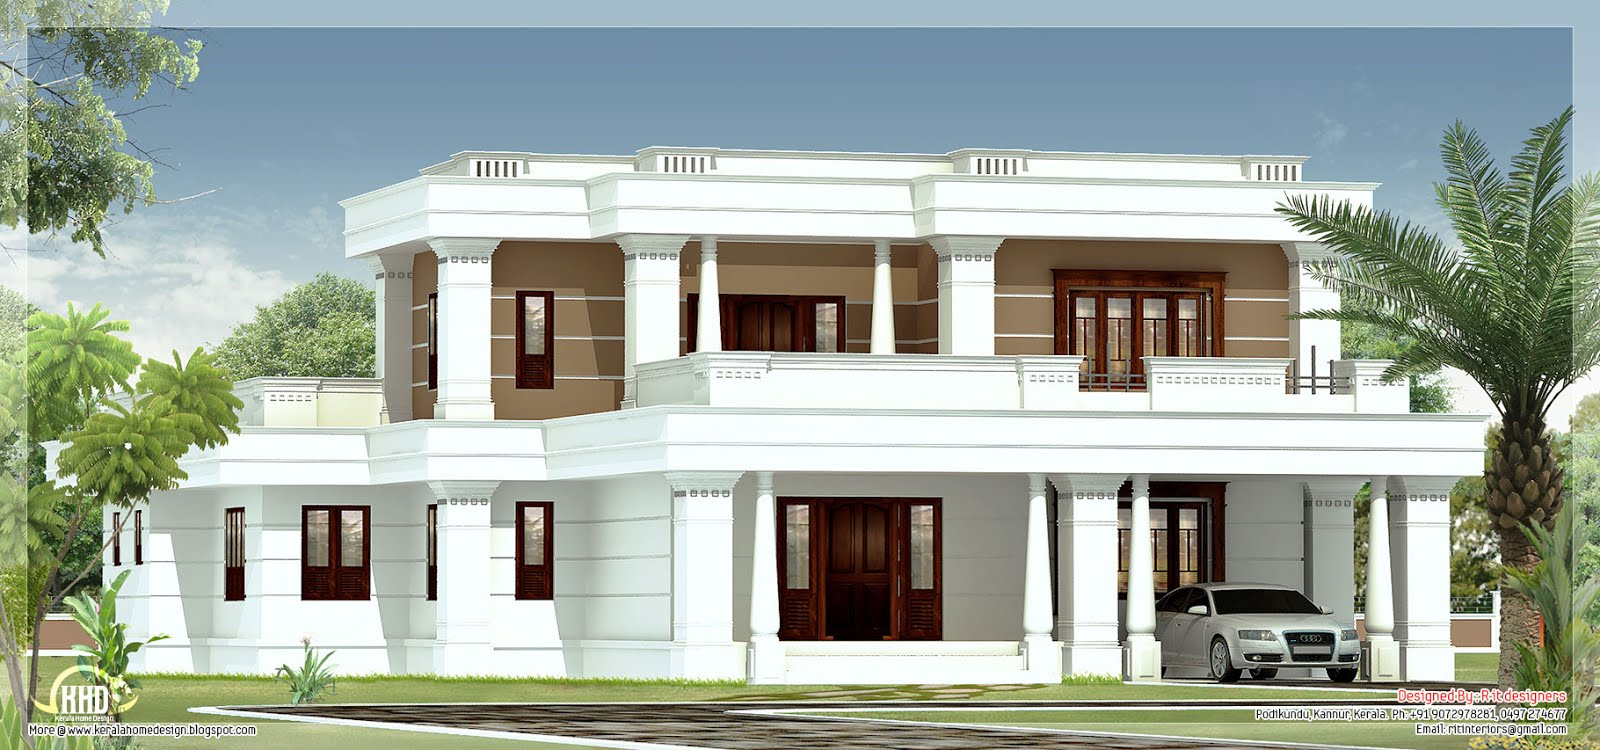 4 bedroom flat roof villa kerala home design and floor plans for White design homes